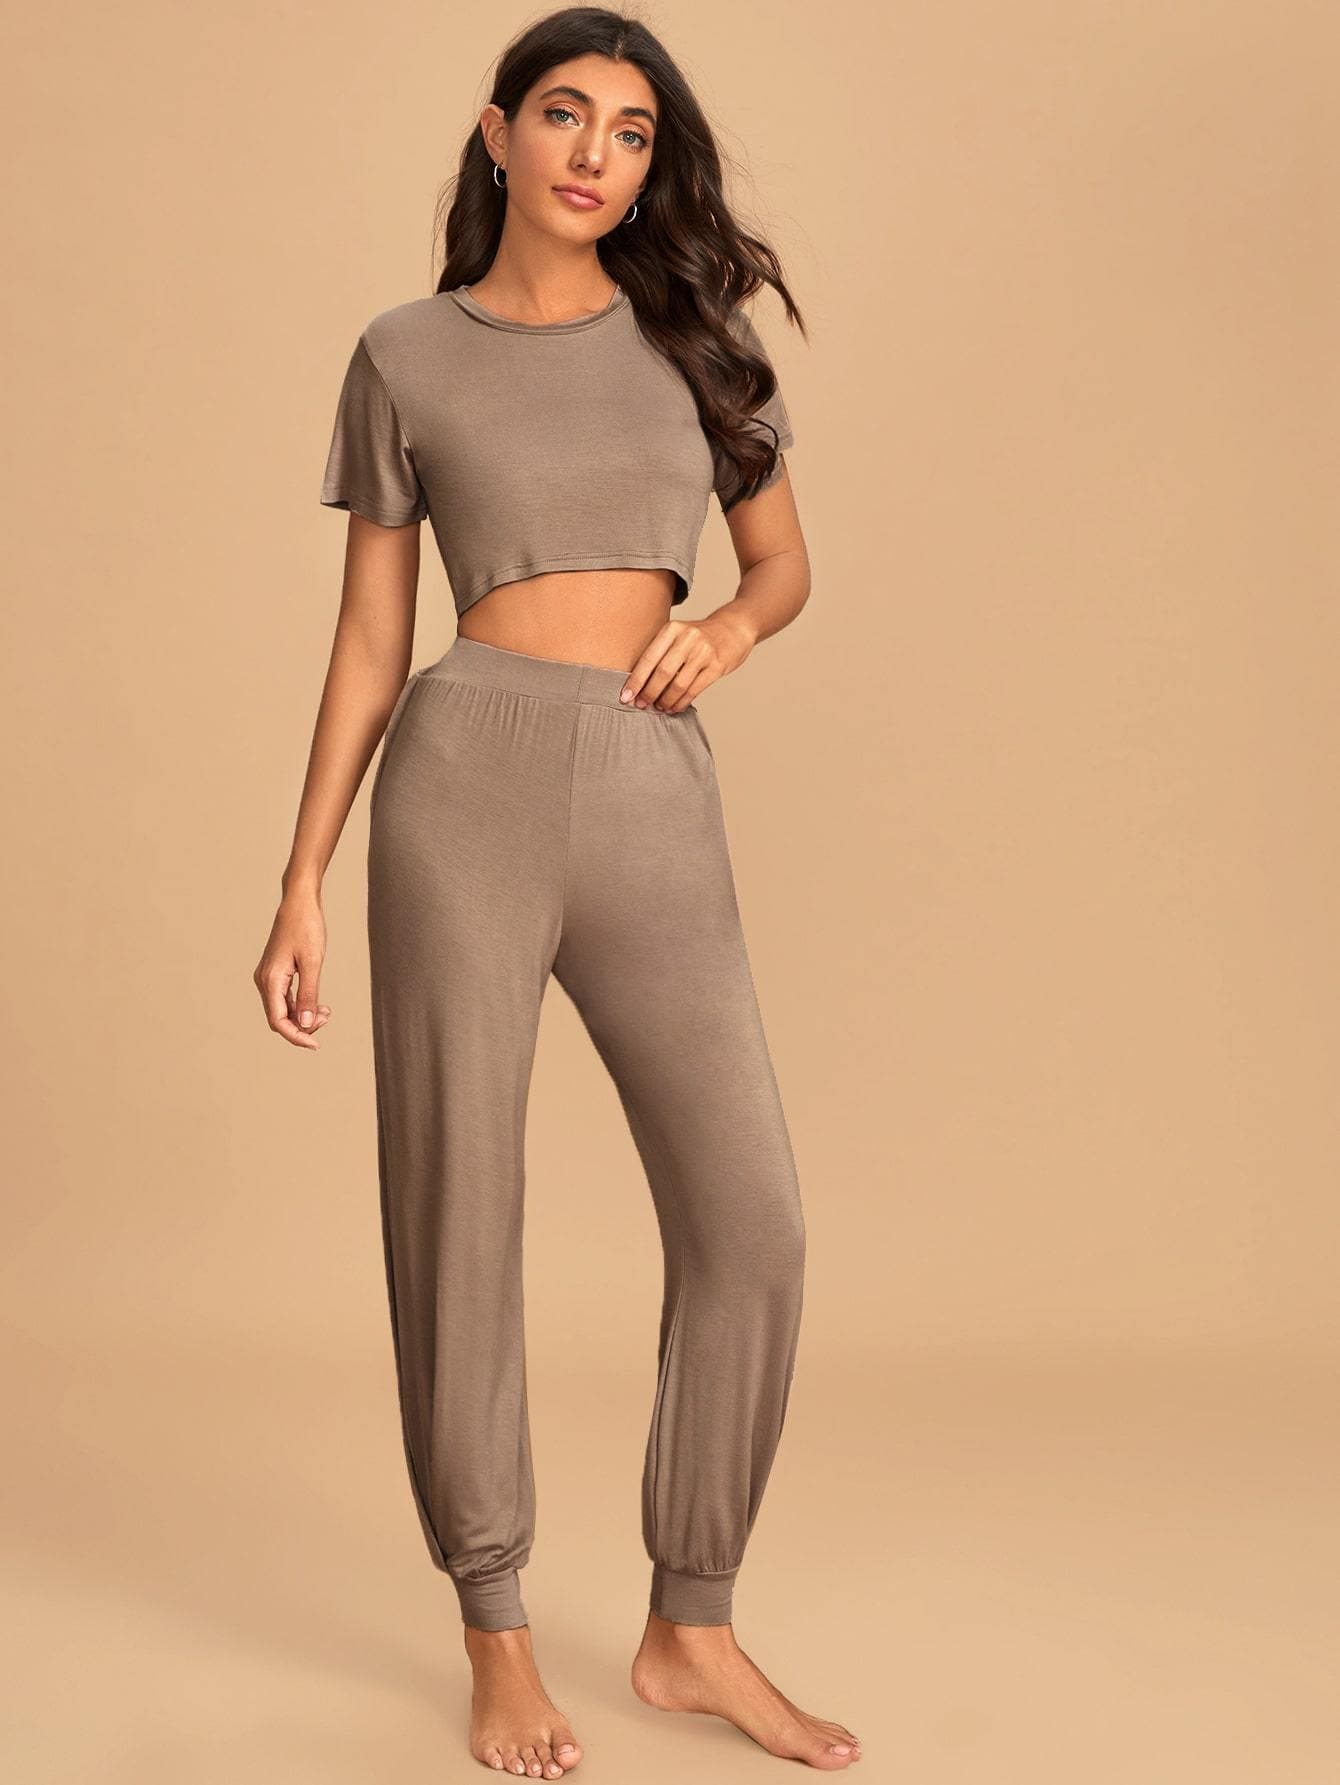 Solid Crop Tee & Pants Modal PJ Set - FLJ CORPORATIONS